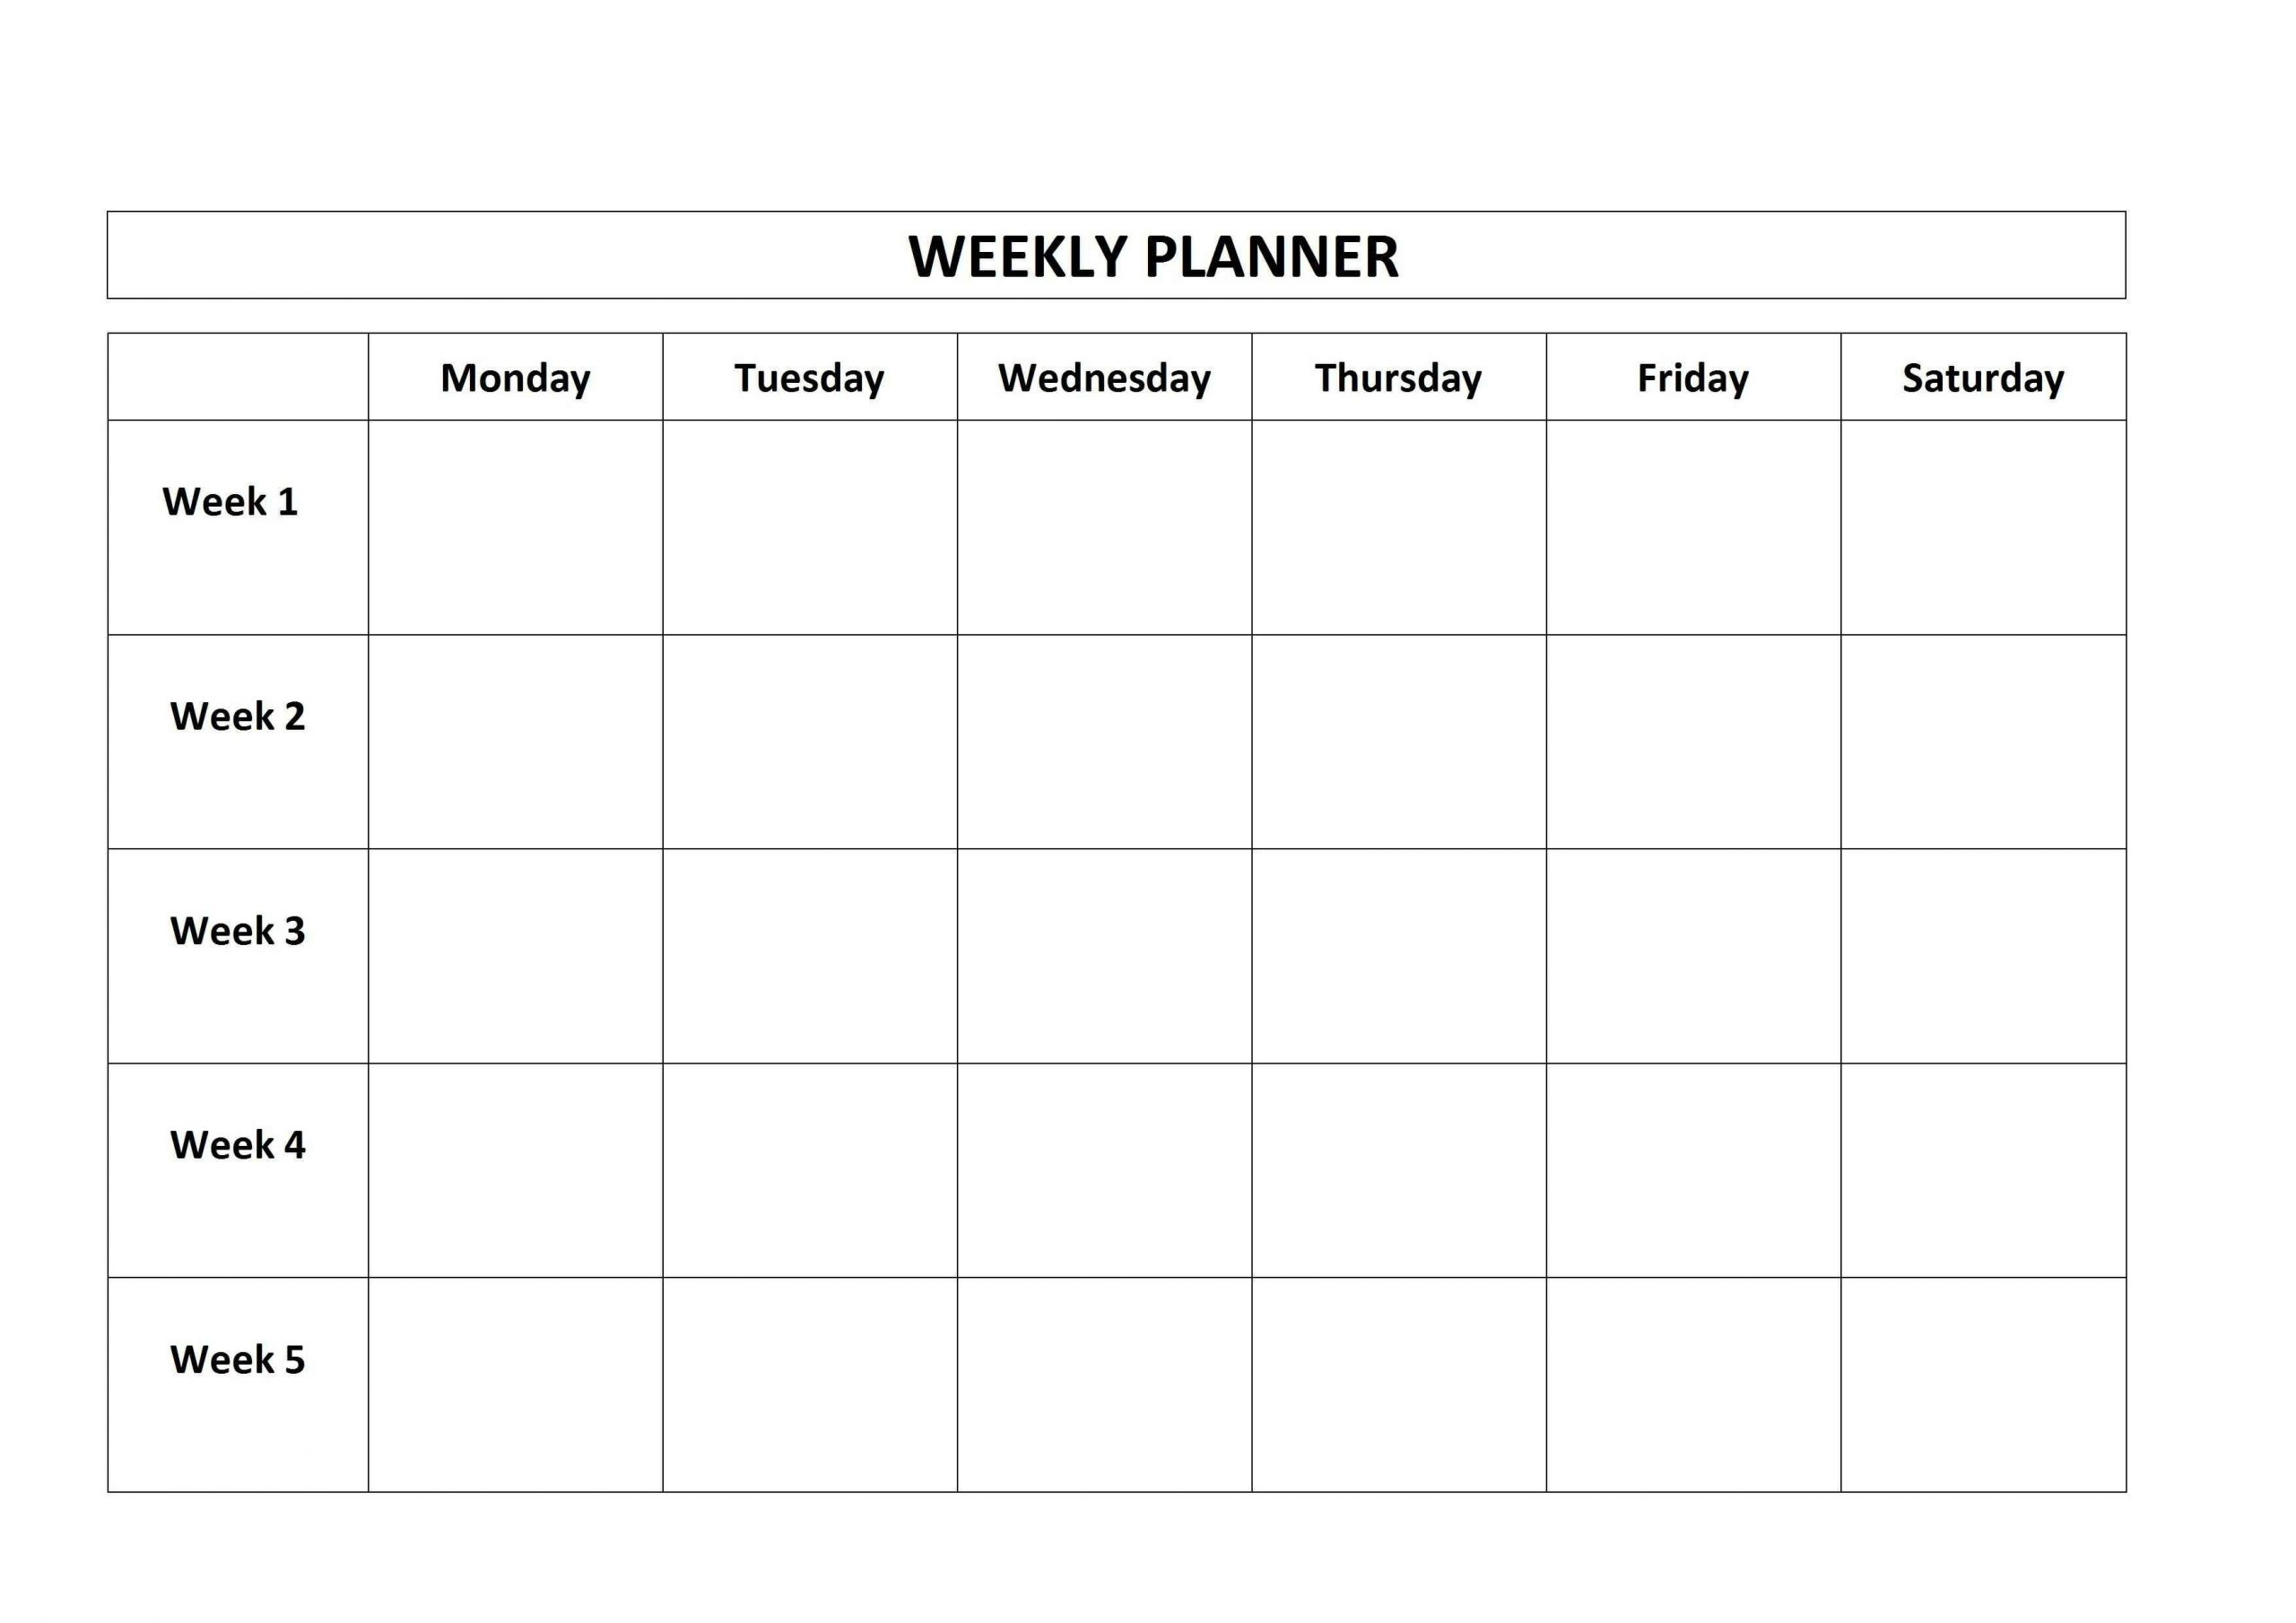 Monday To Friday Schedule Template   Example Calendar Monday To Friday Template Download